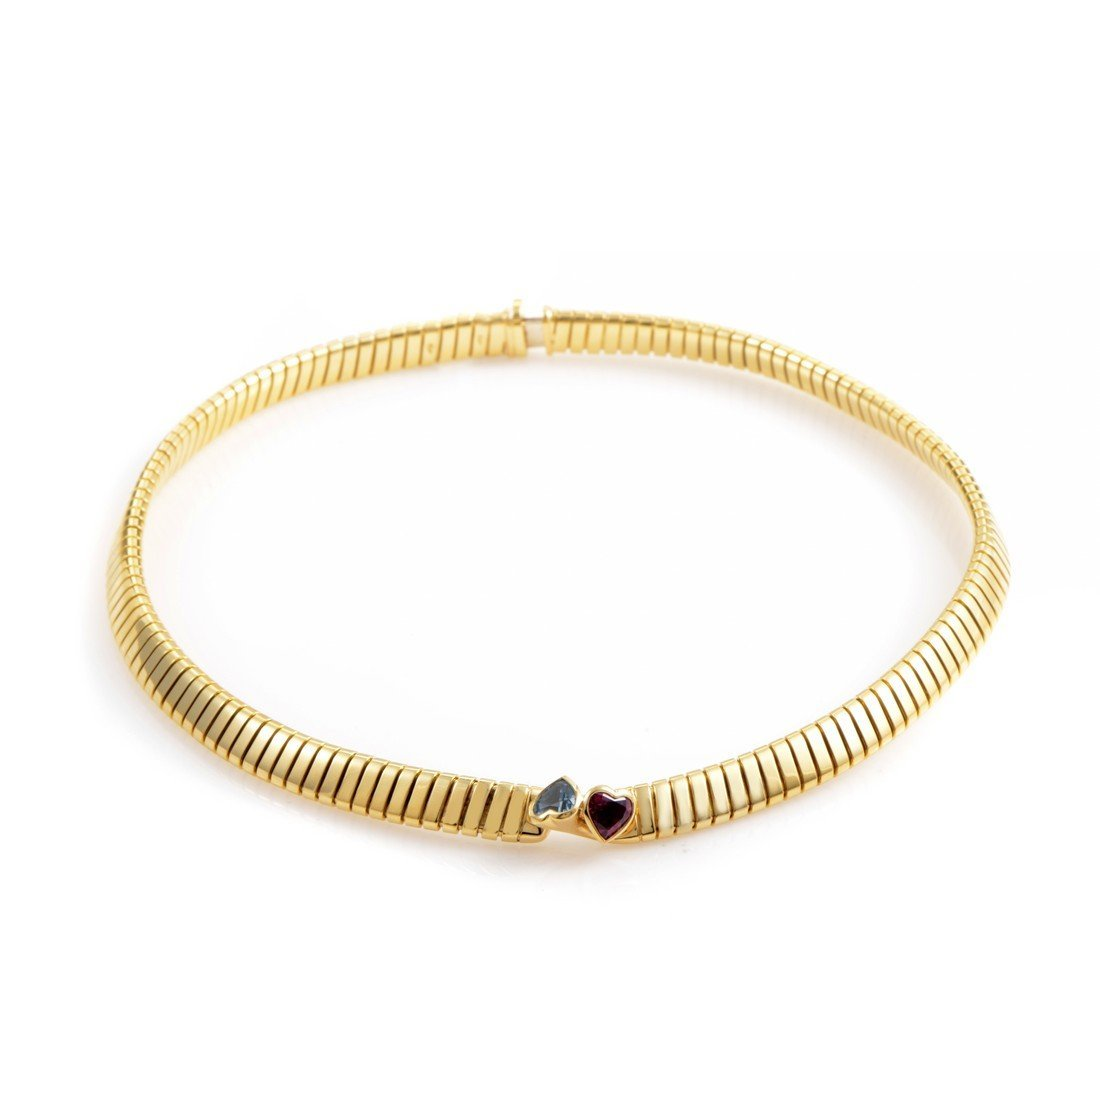 Bvlgari 18K Yellow Gold Double Heart Collar Necklace